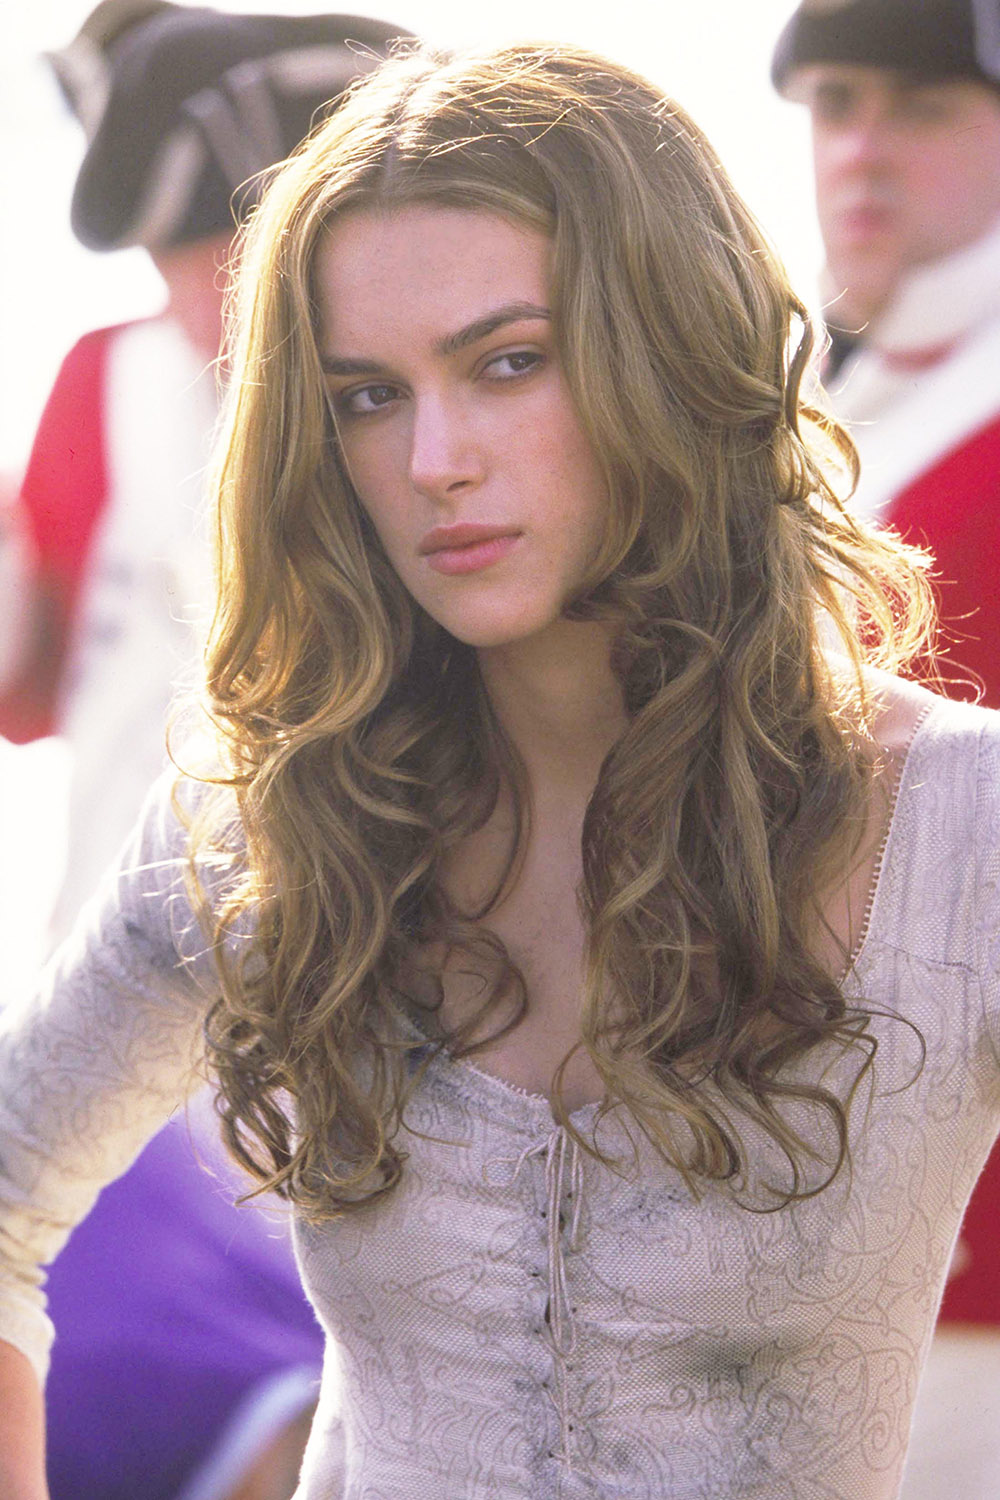 keira knightley hair and makeup style file